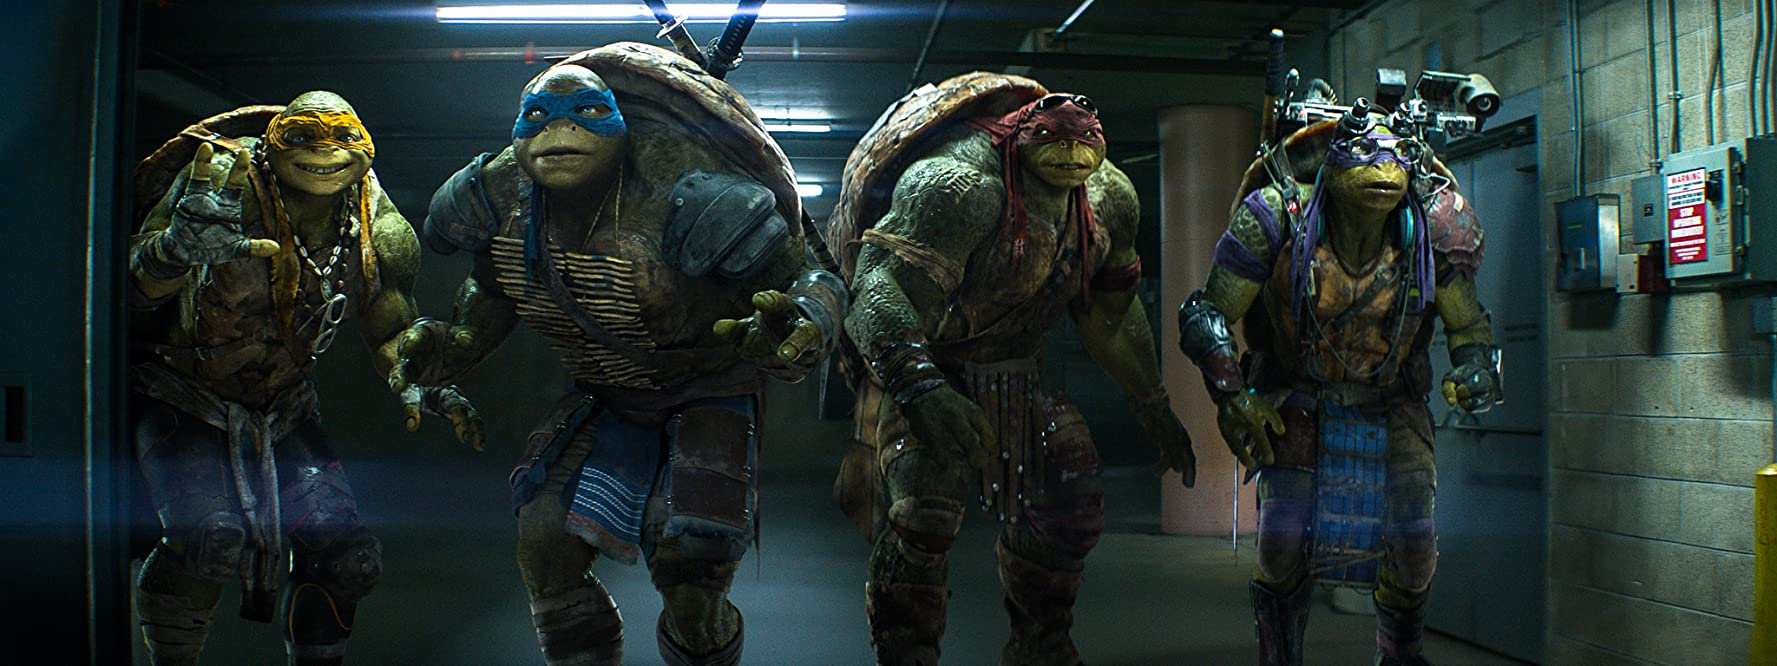 Noel Fisher, Jeremy Howard, Johnny Knoxville, and Alan Ritchson in Teenage Mutant Ninja Turtles (2014)